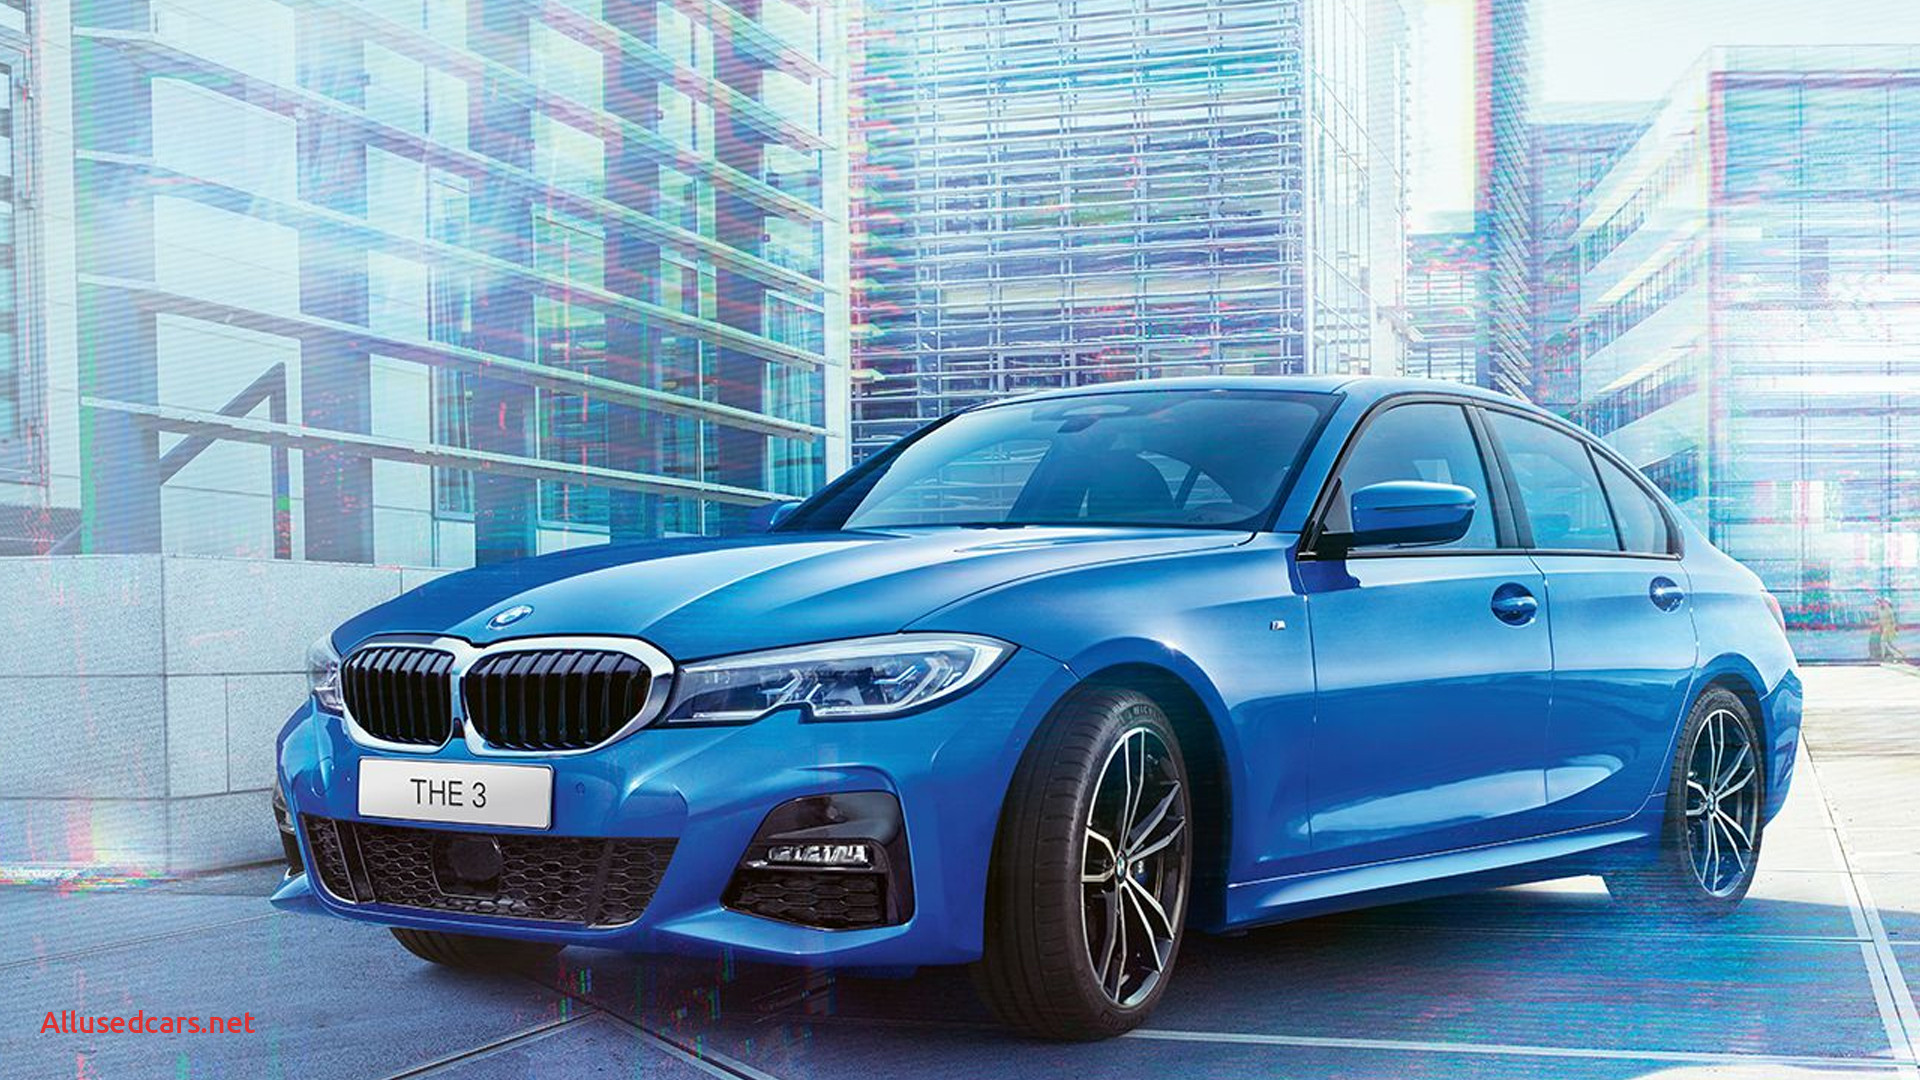 Price My Car Inspirational Bmw 3 Series 2019 Price Mileage Reviews Specification